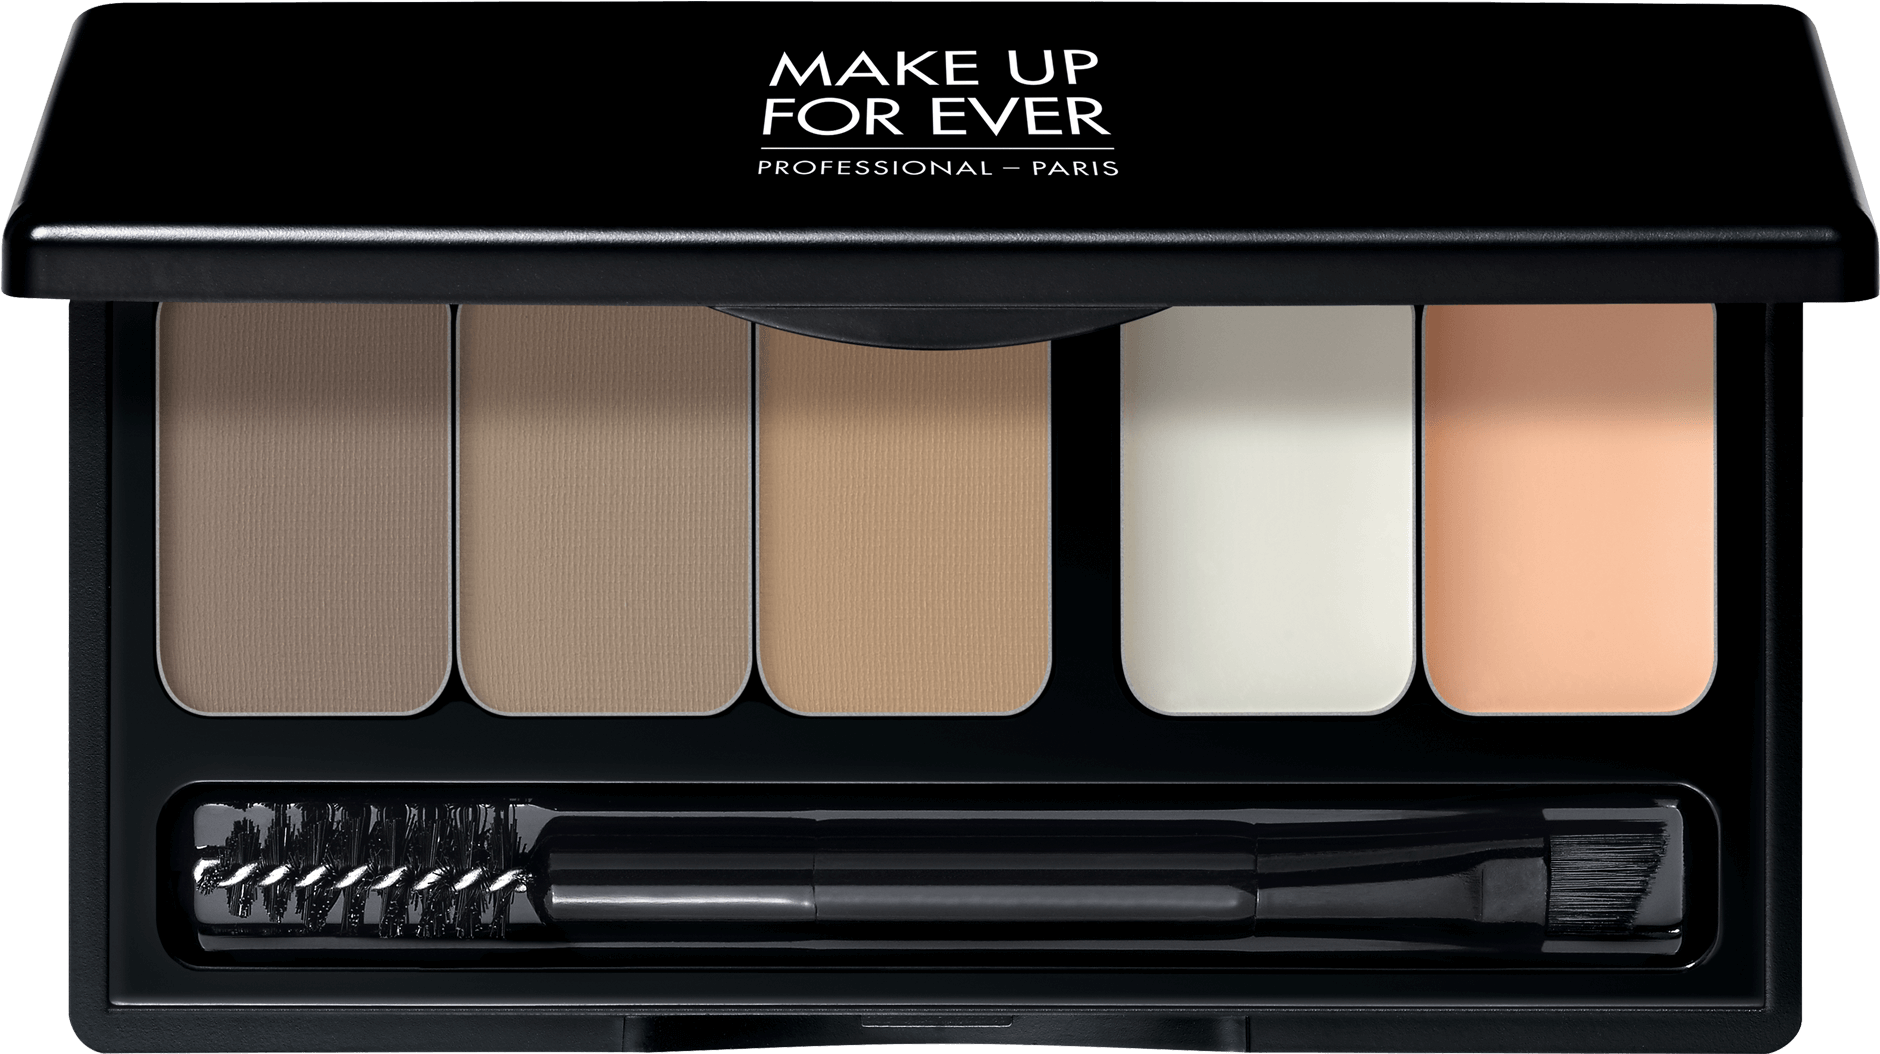 Make Up For Ever Pro Sculpting Brow Palette, $76 - Make Up For Ever Pro Sculpting Brow Palette Harmony (1212x1212), Png Download